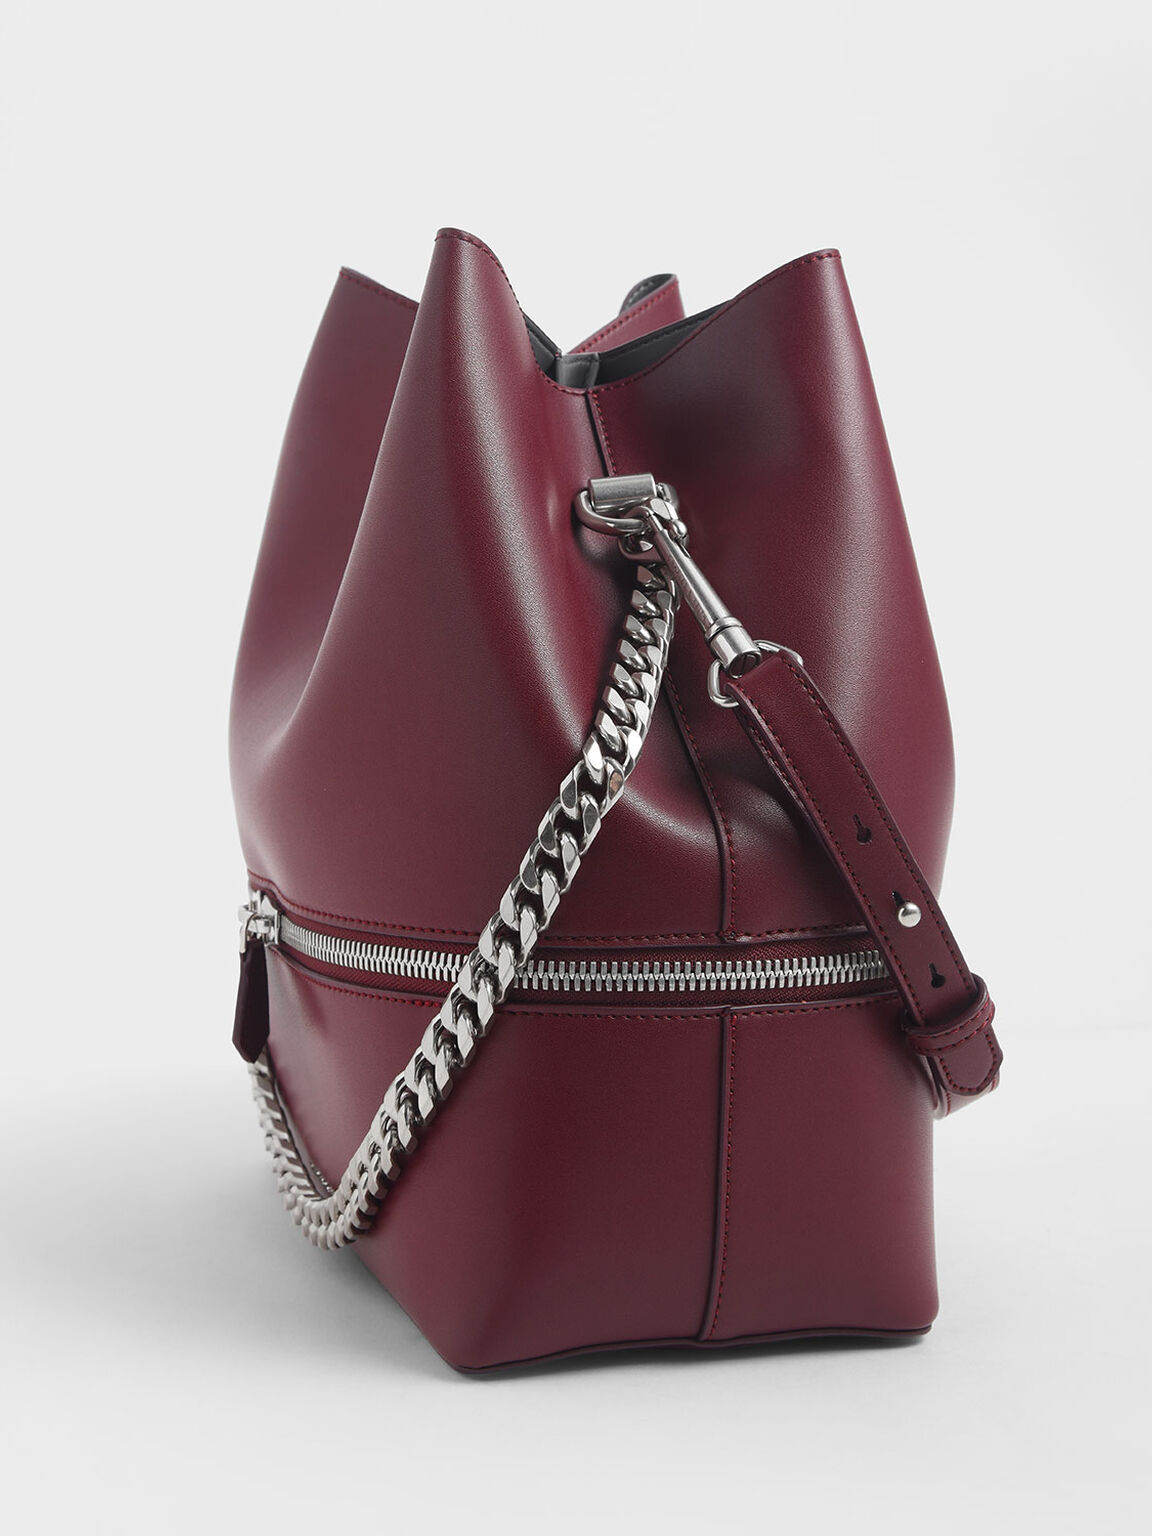 Two-Way Zip Hobo Bag, Burgundy, hi-res